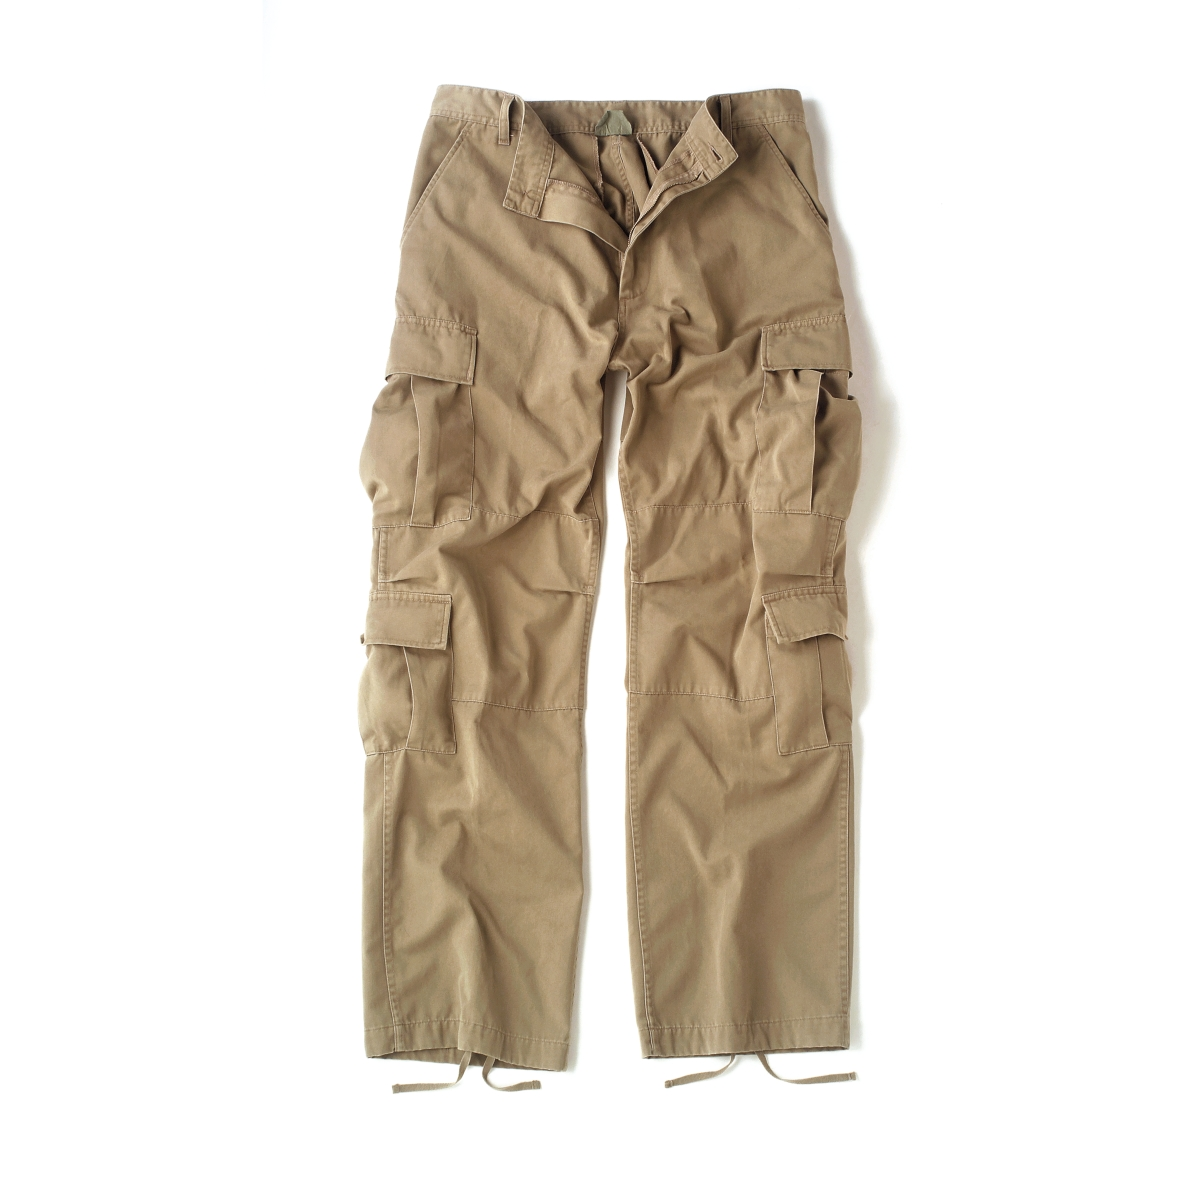 Khaki pants - deals on 1001 Blocks